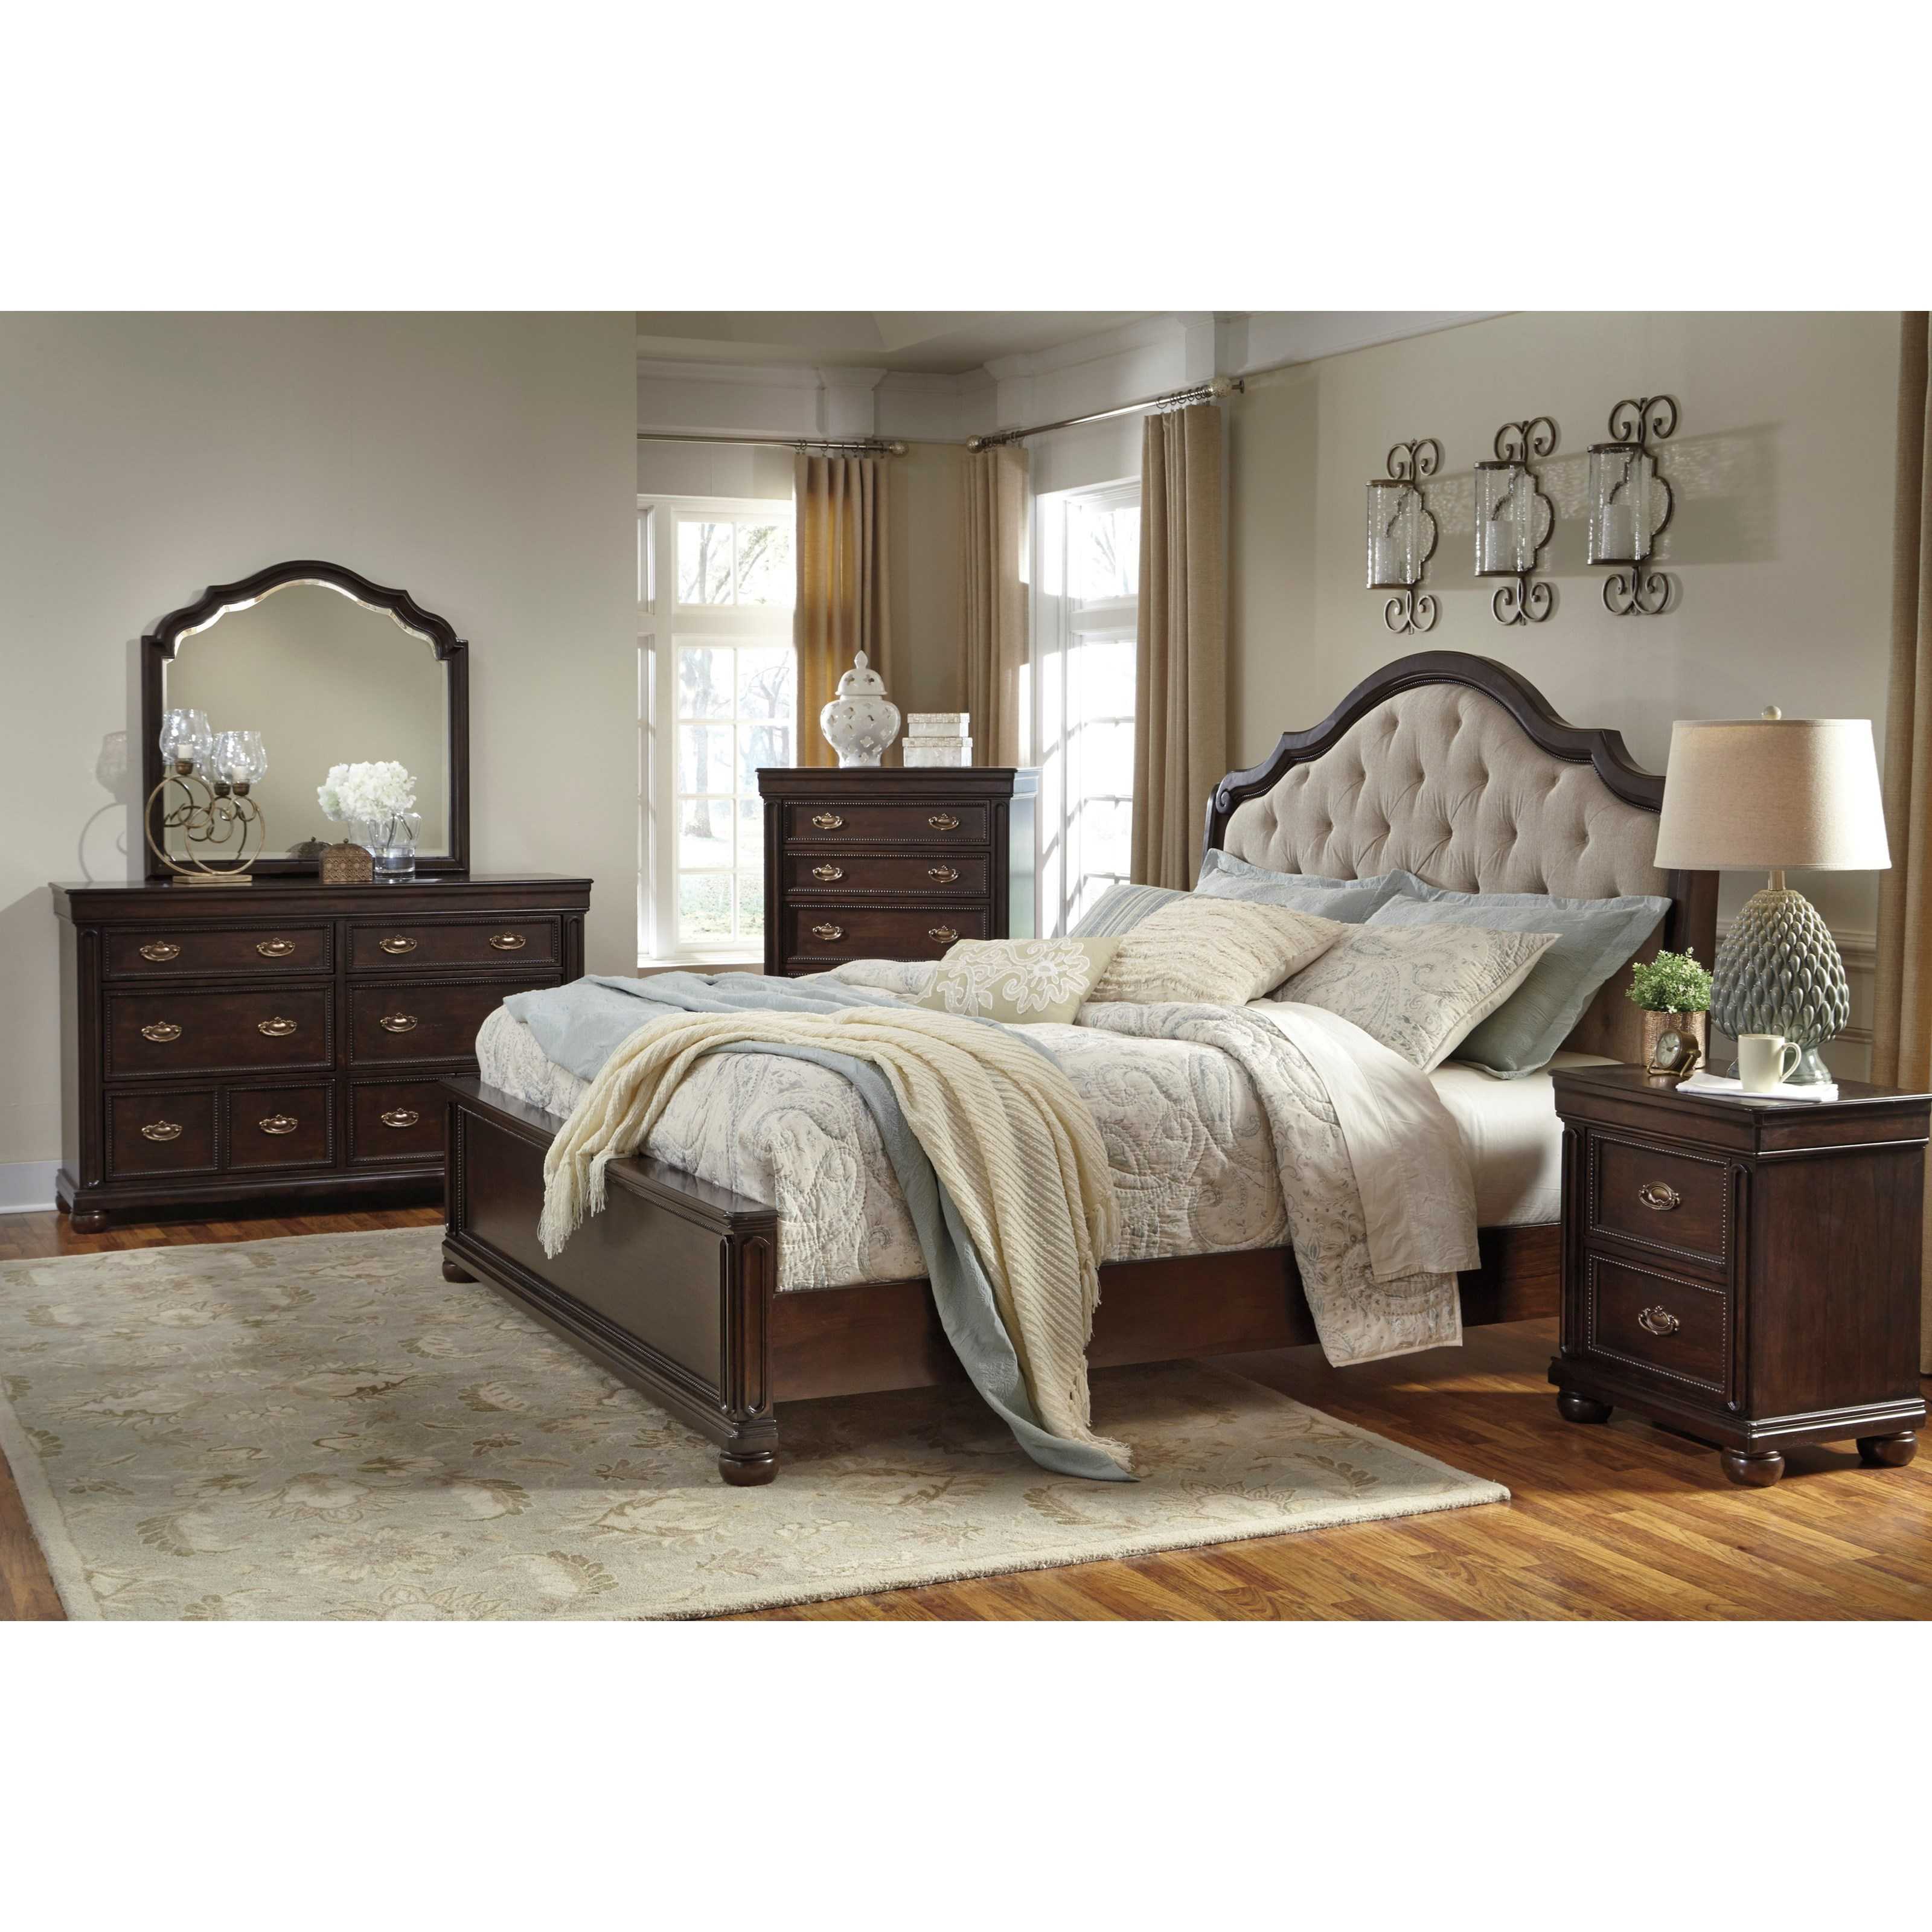 ashley moluxy king bedroom group item number b596 k bedroom group 1